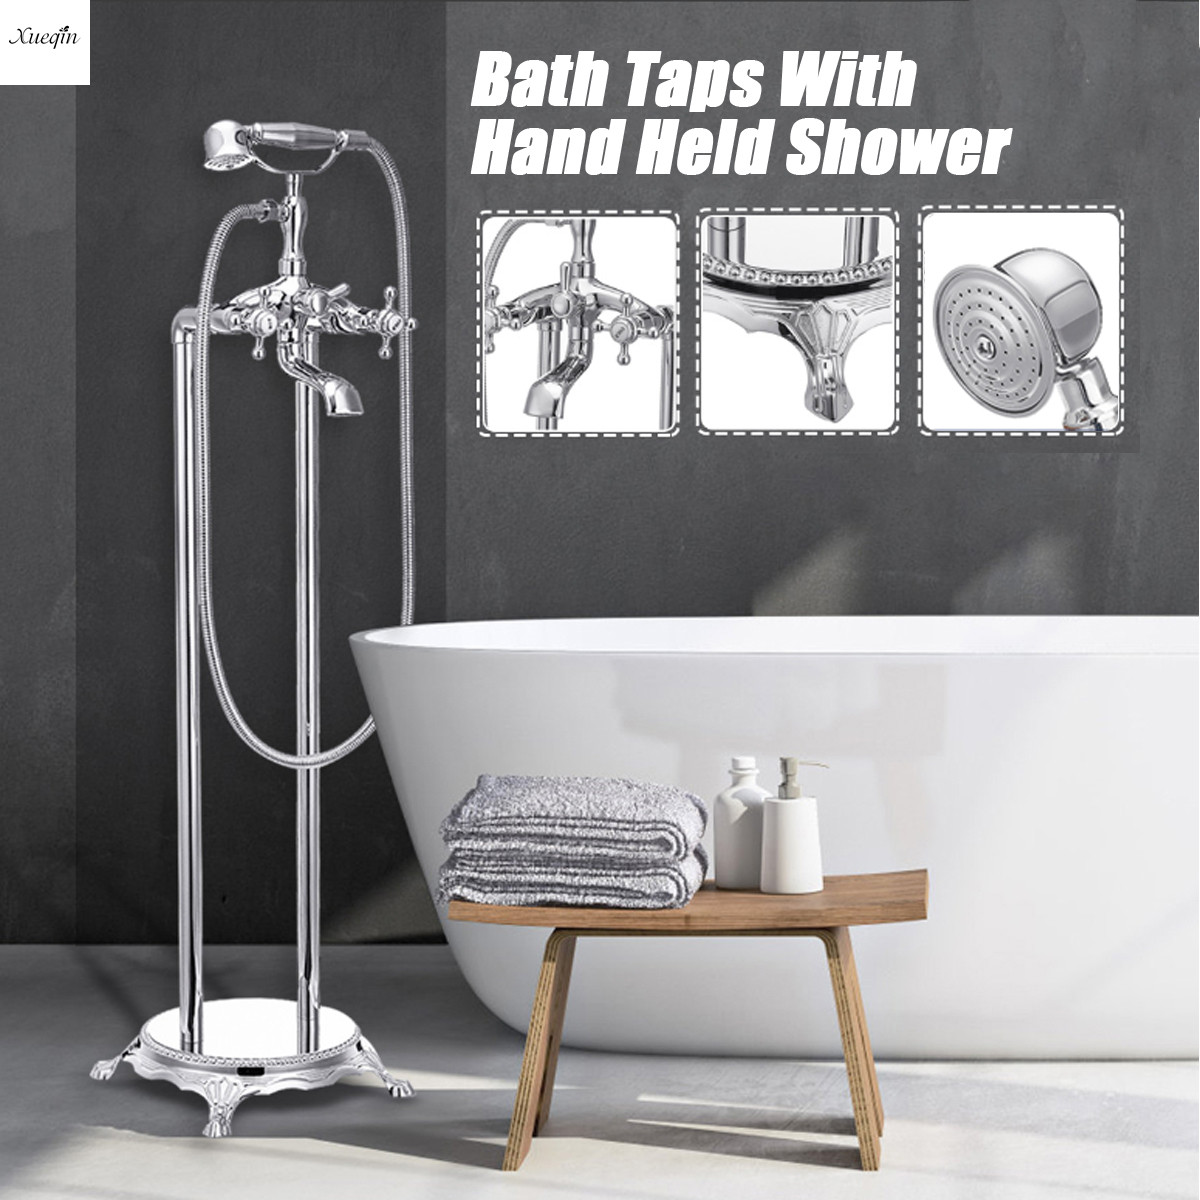 Solid Silver Shower Faucets Bathroom Taps Luxury Chrome Floor Stand Bathtub Faucet Free Standing Bath Shower Mixer Hot and Cold kemaidi floor standing bathtub faucets brass chrome free standing bath shower mixer set bath tub faucet with handshower